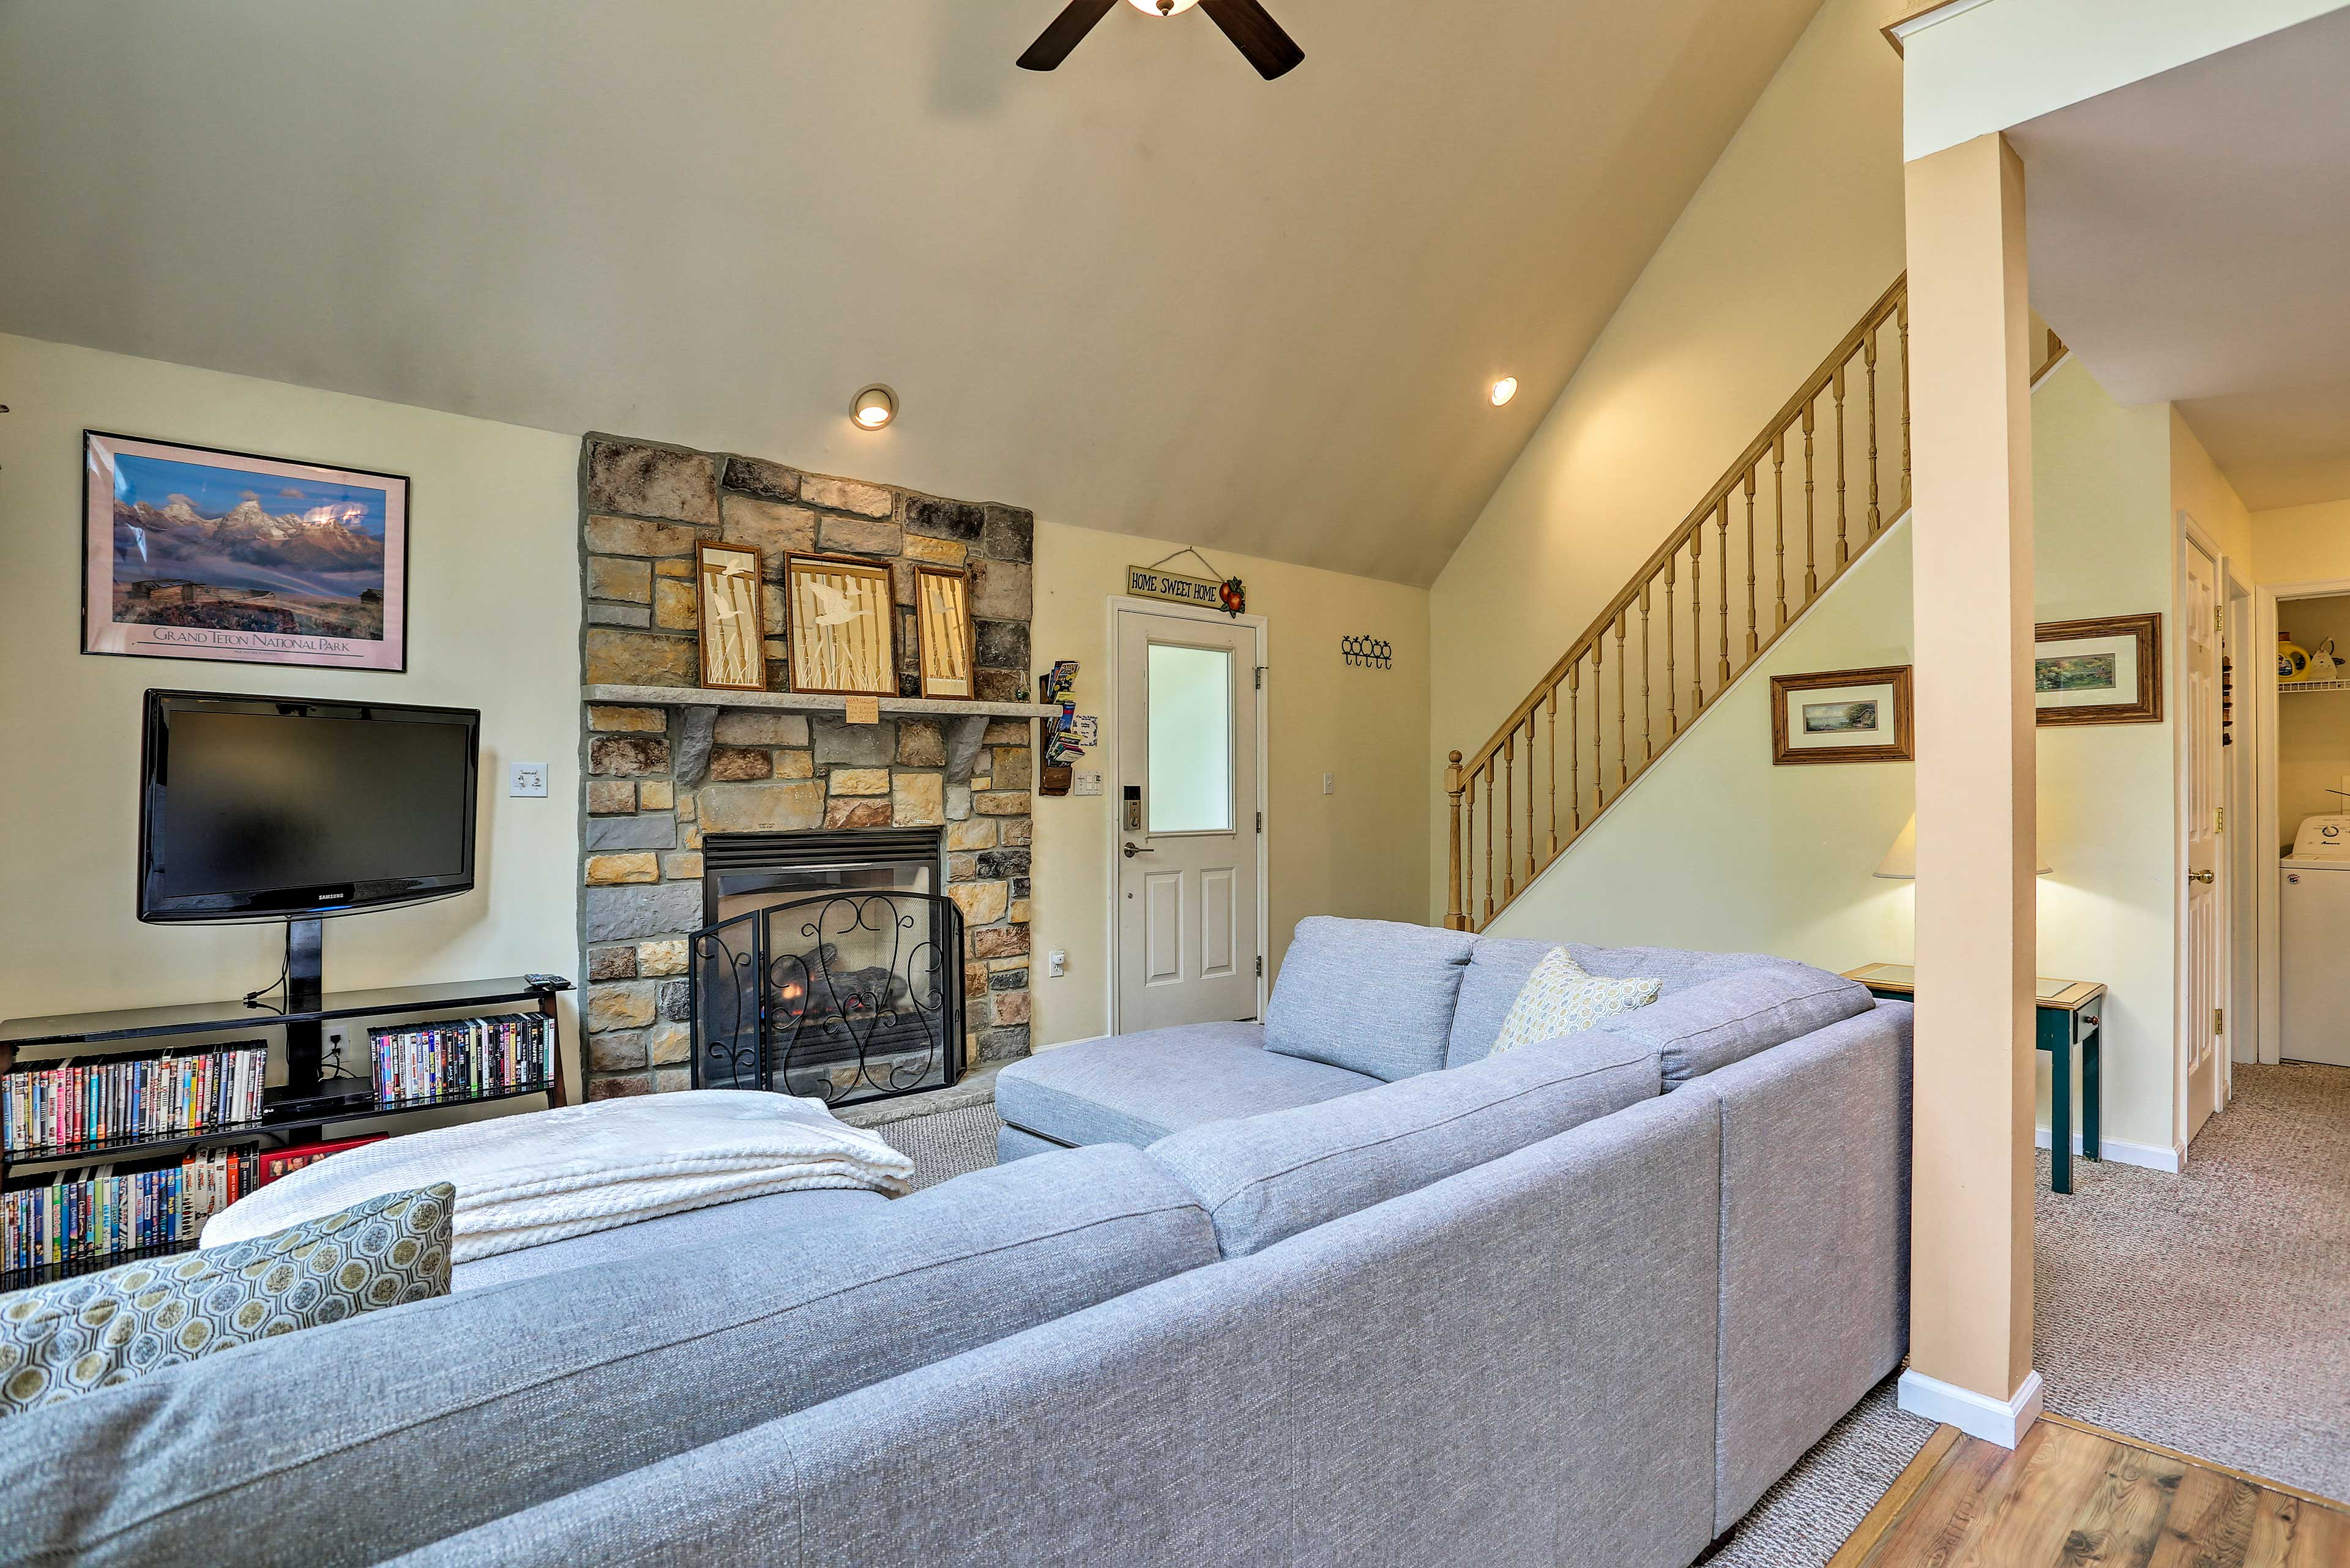 You'll feel the flames of the gas fireplace warm the room.